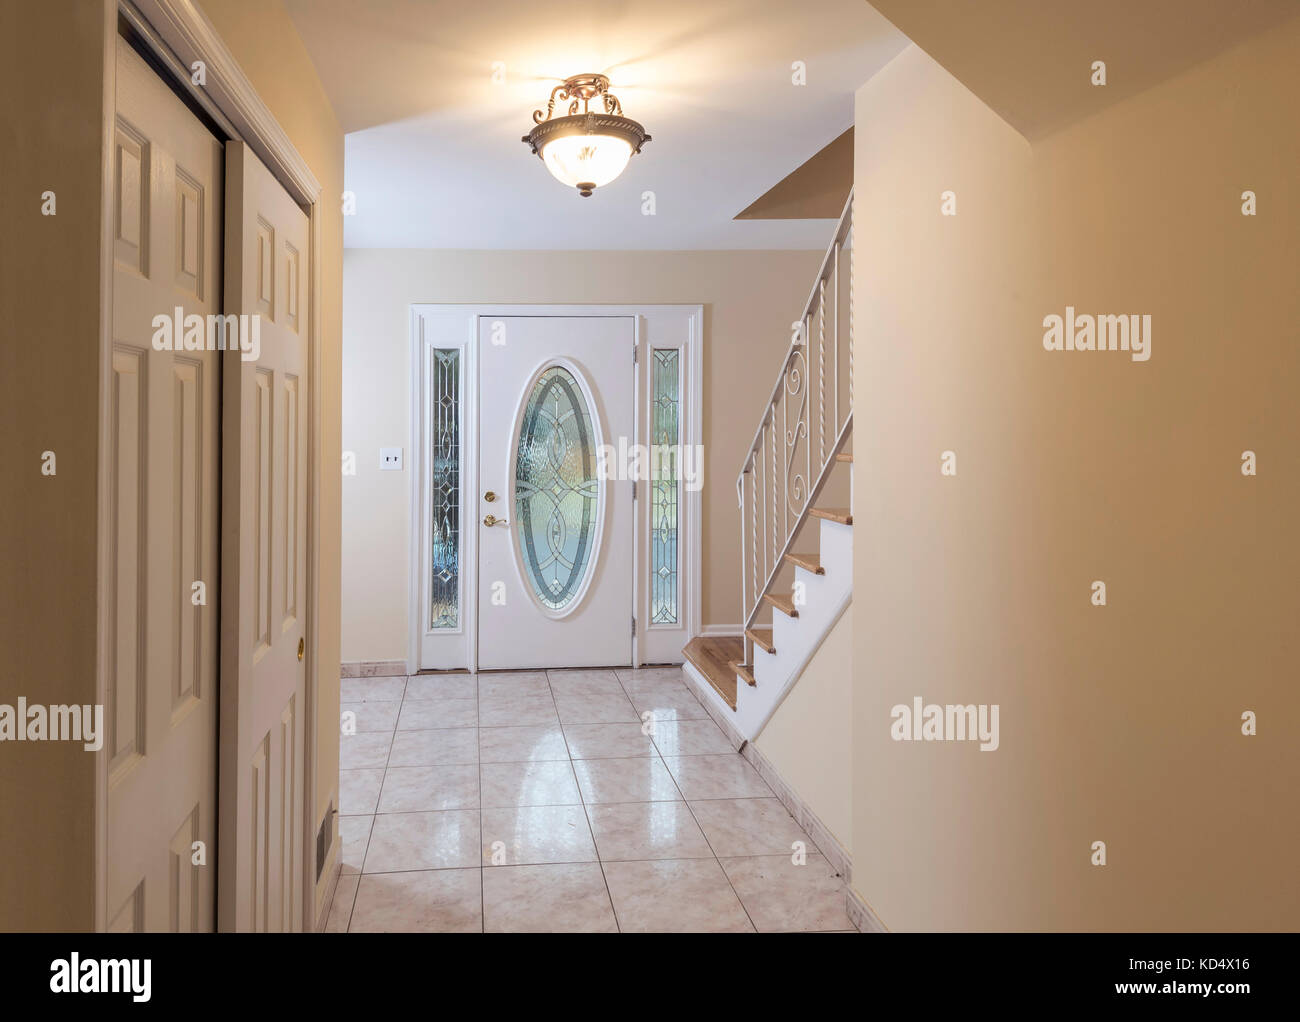 Empty Vacant Foyer In Residential Home - Stock Image